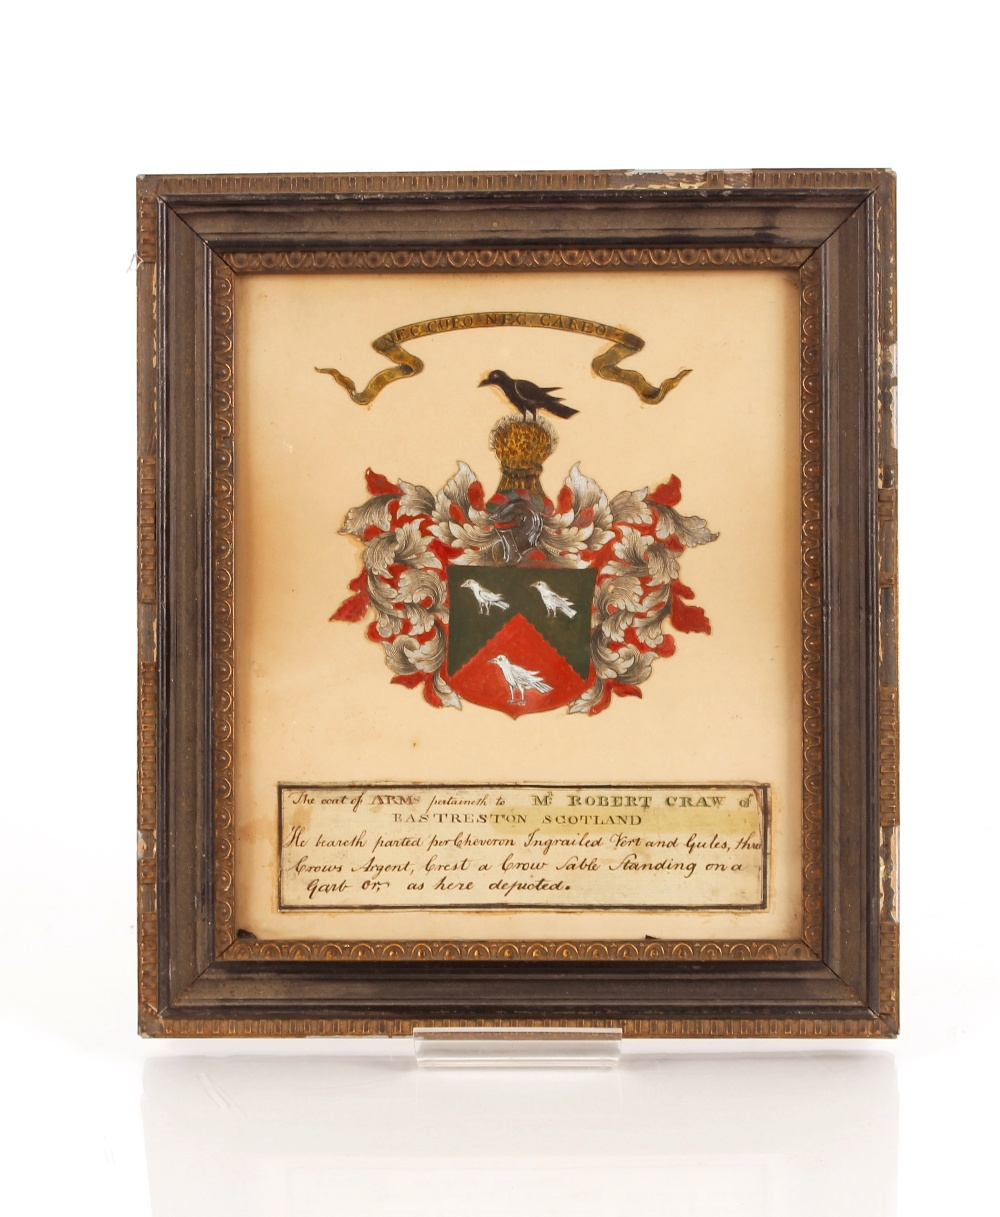 A framed and glazed coat of arms,pertaining to Robert Craw of Eastreston, Scotland, 22cm x 18cm